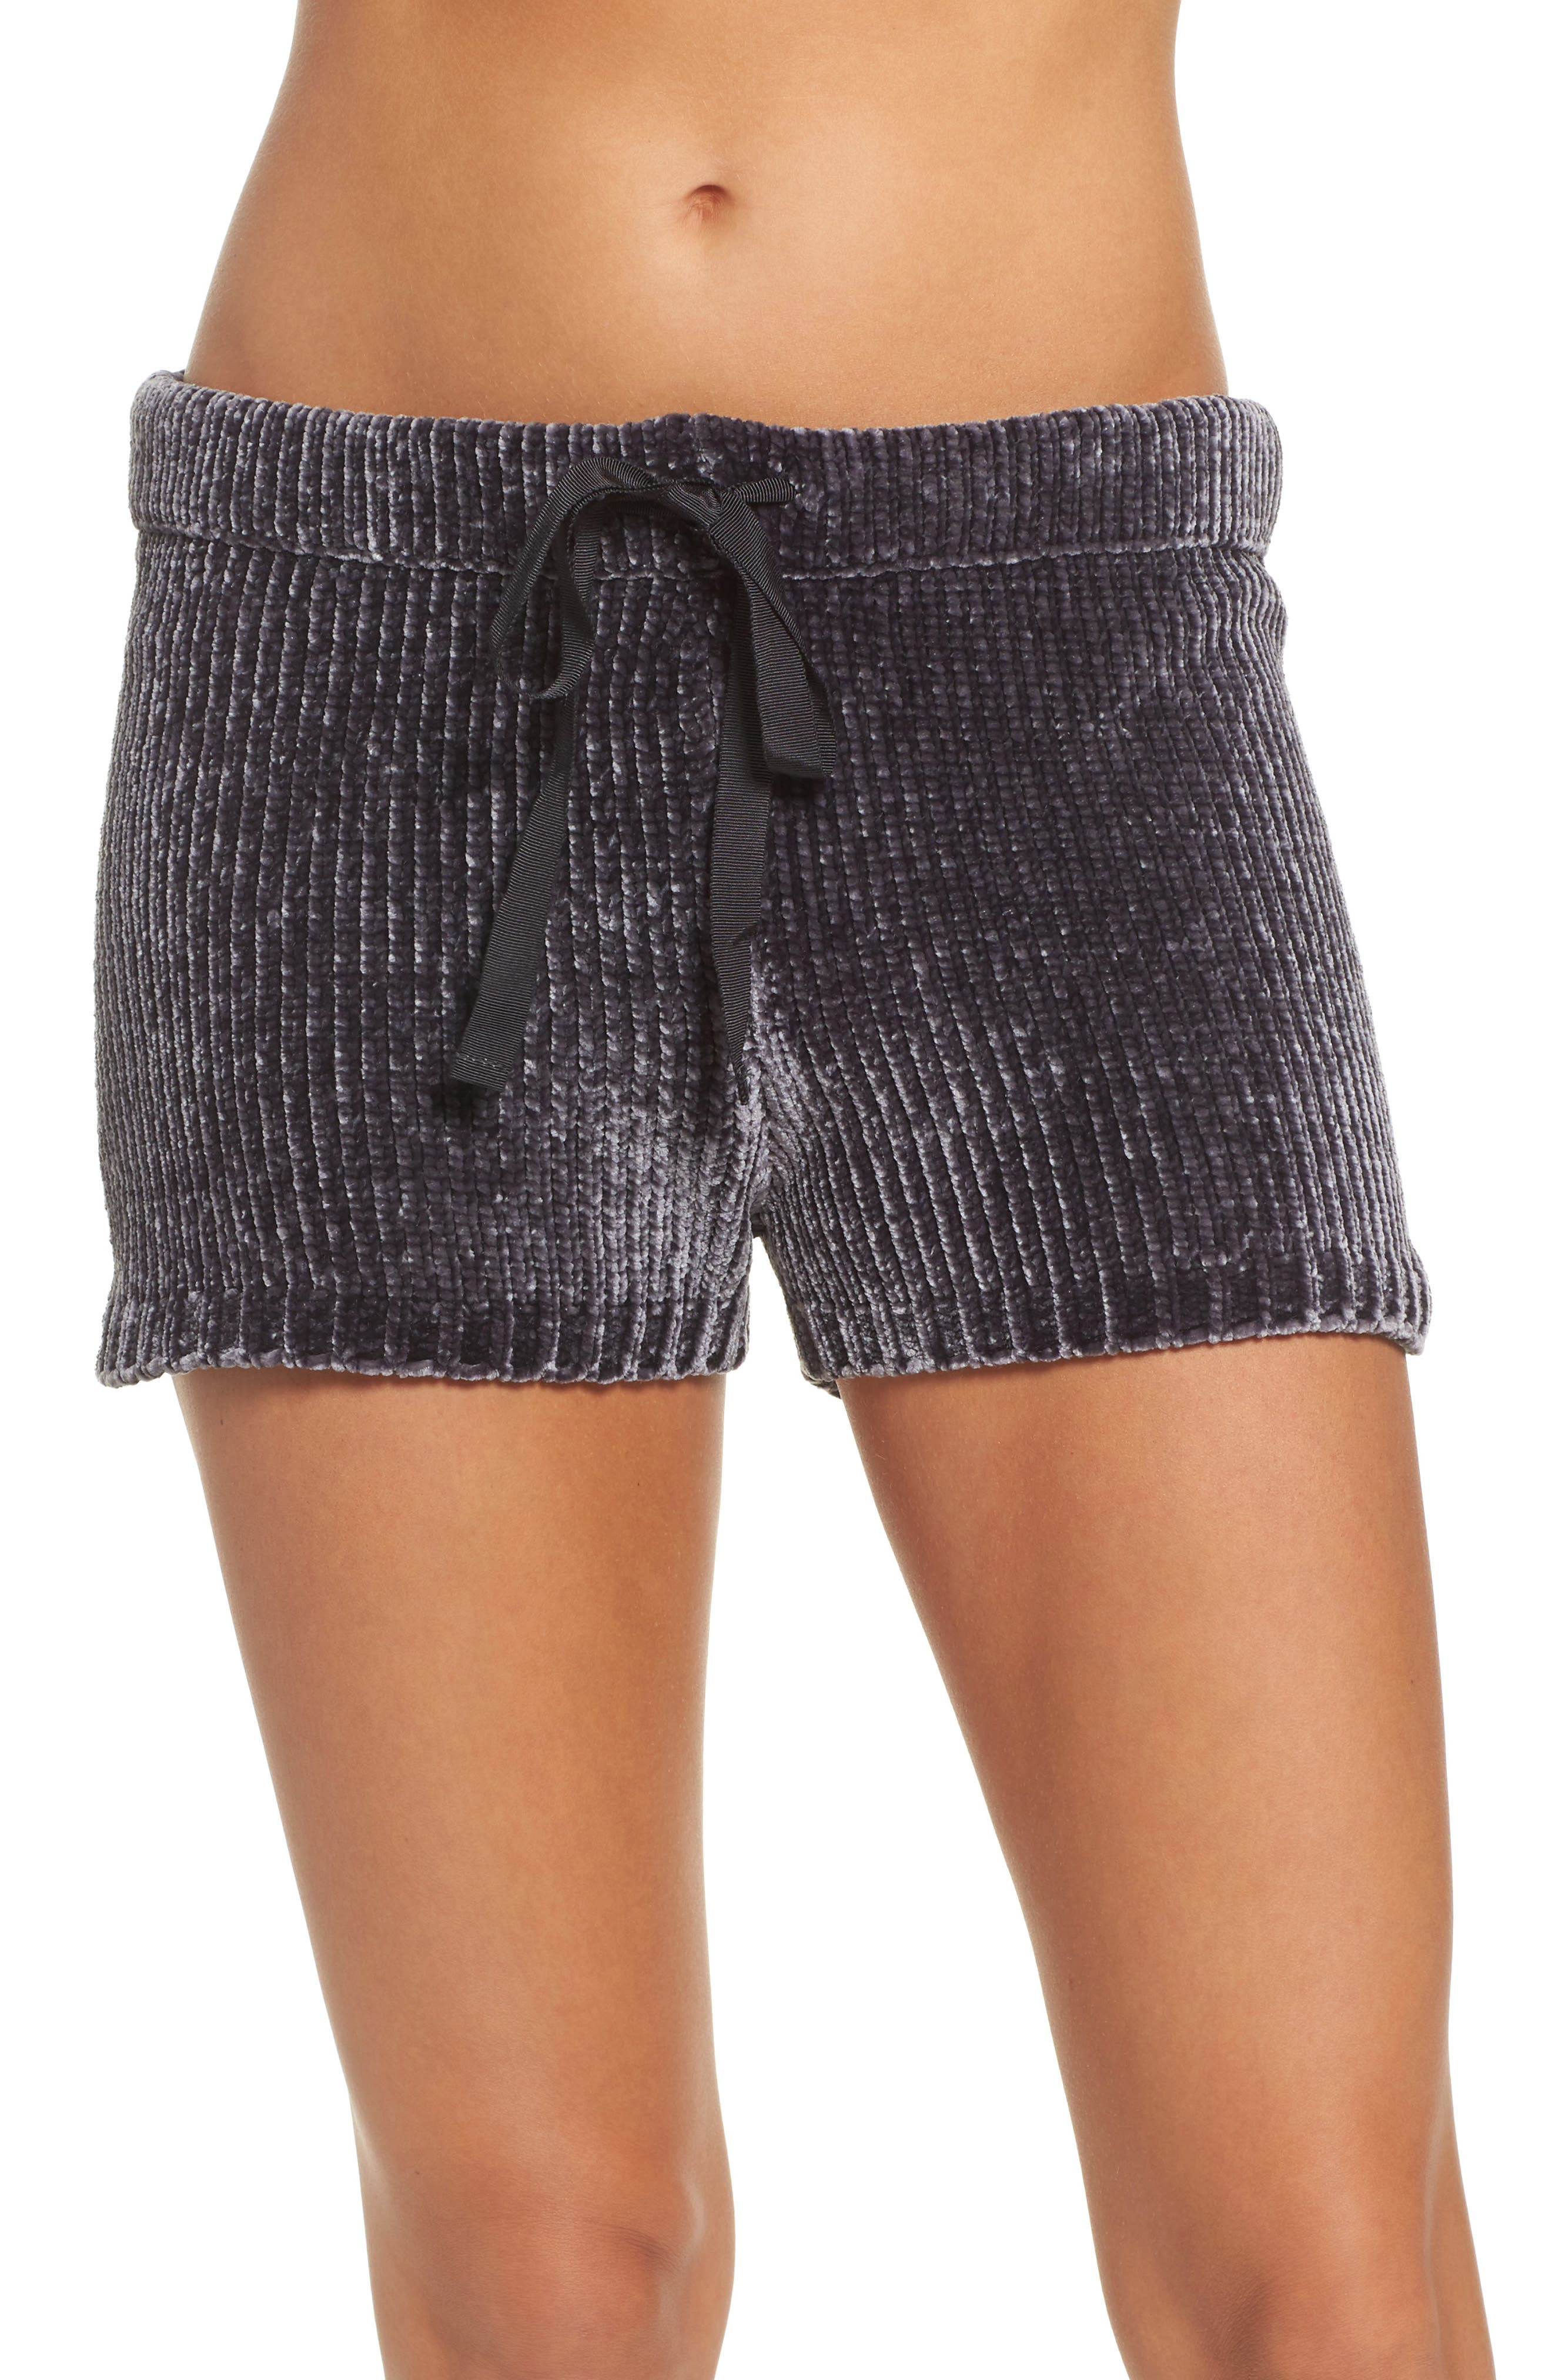 Chenille Shorts,                         Main,                         color, 030